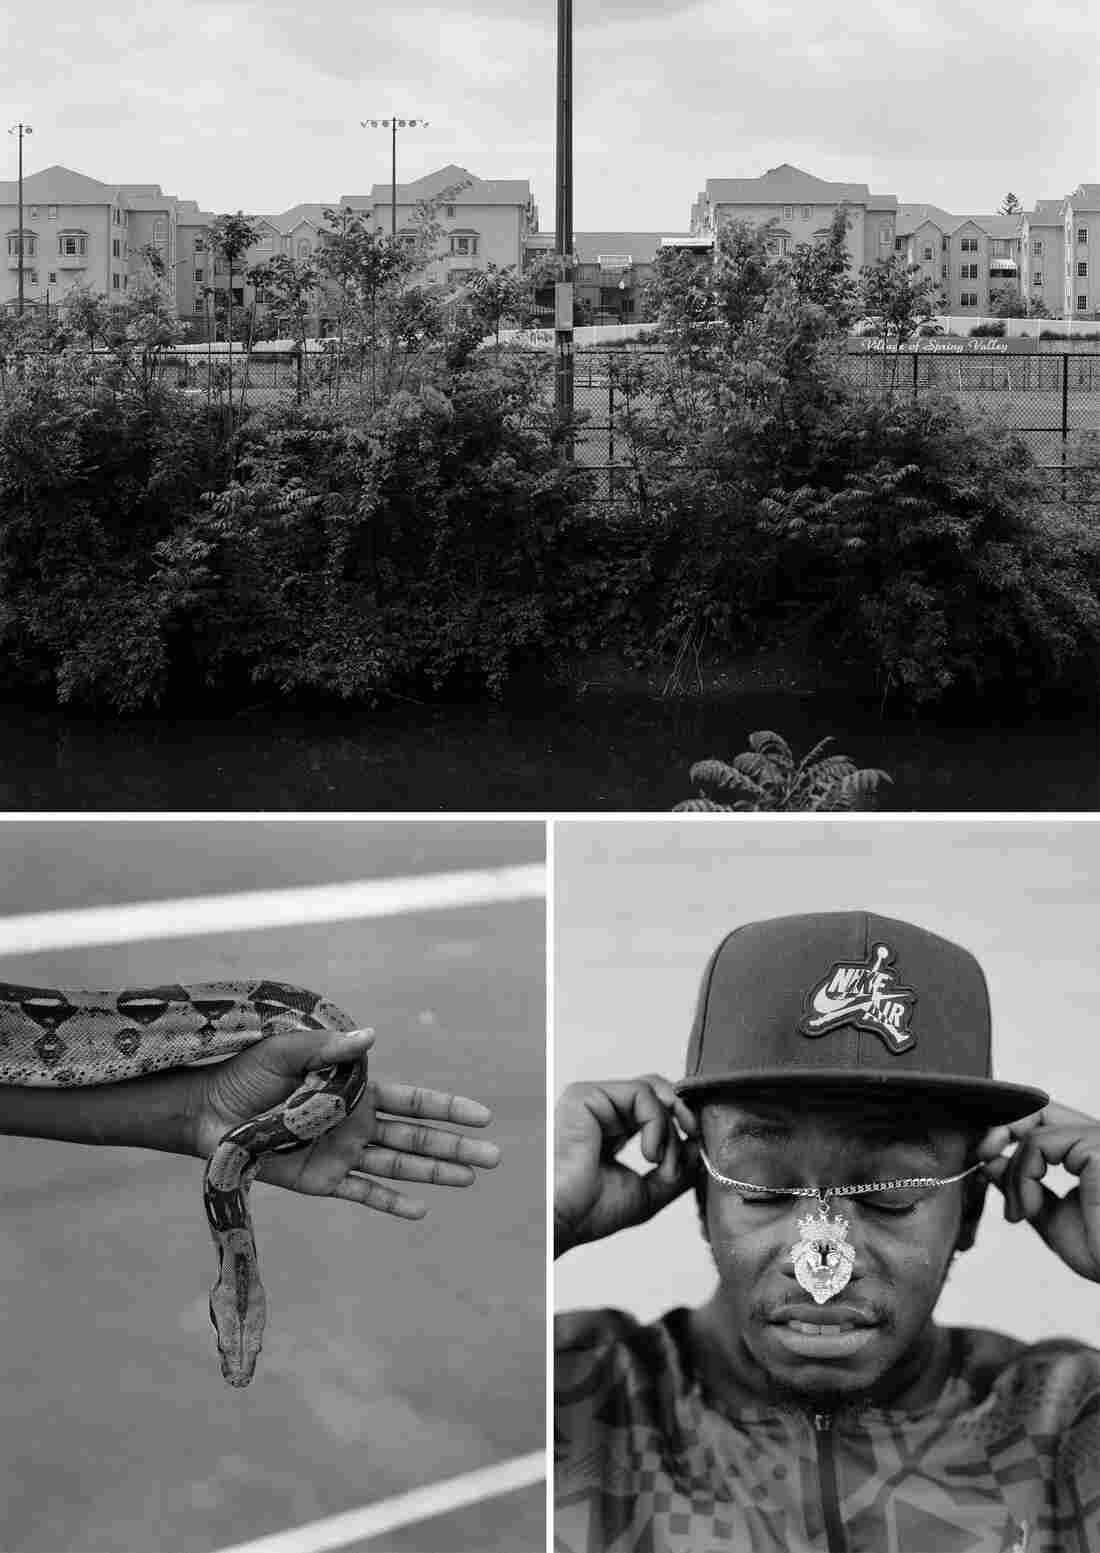 Trees in front of an apartment complex, a Black man puts a necklace on, a person holds a snake.